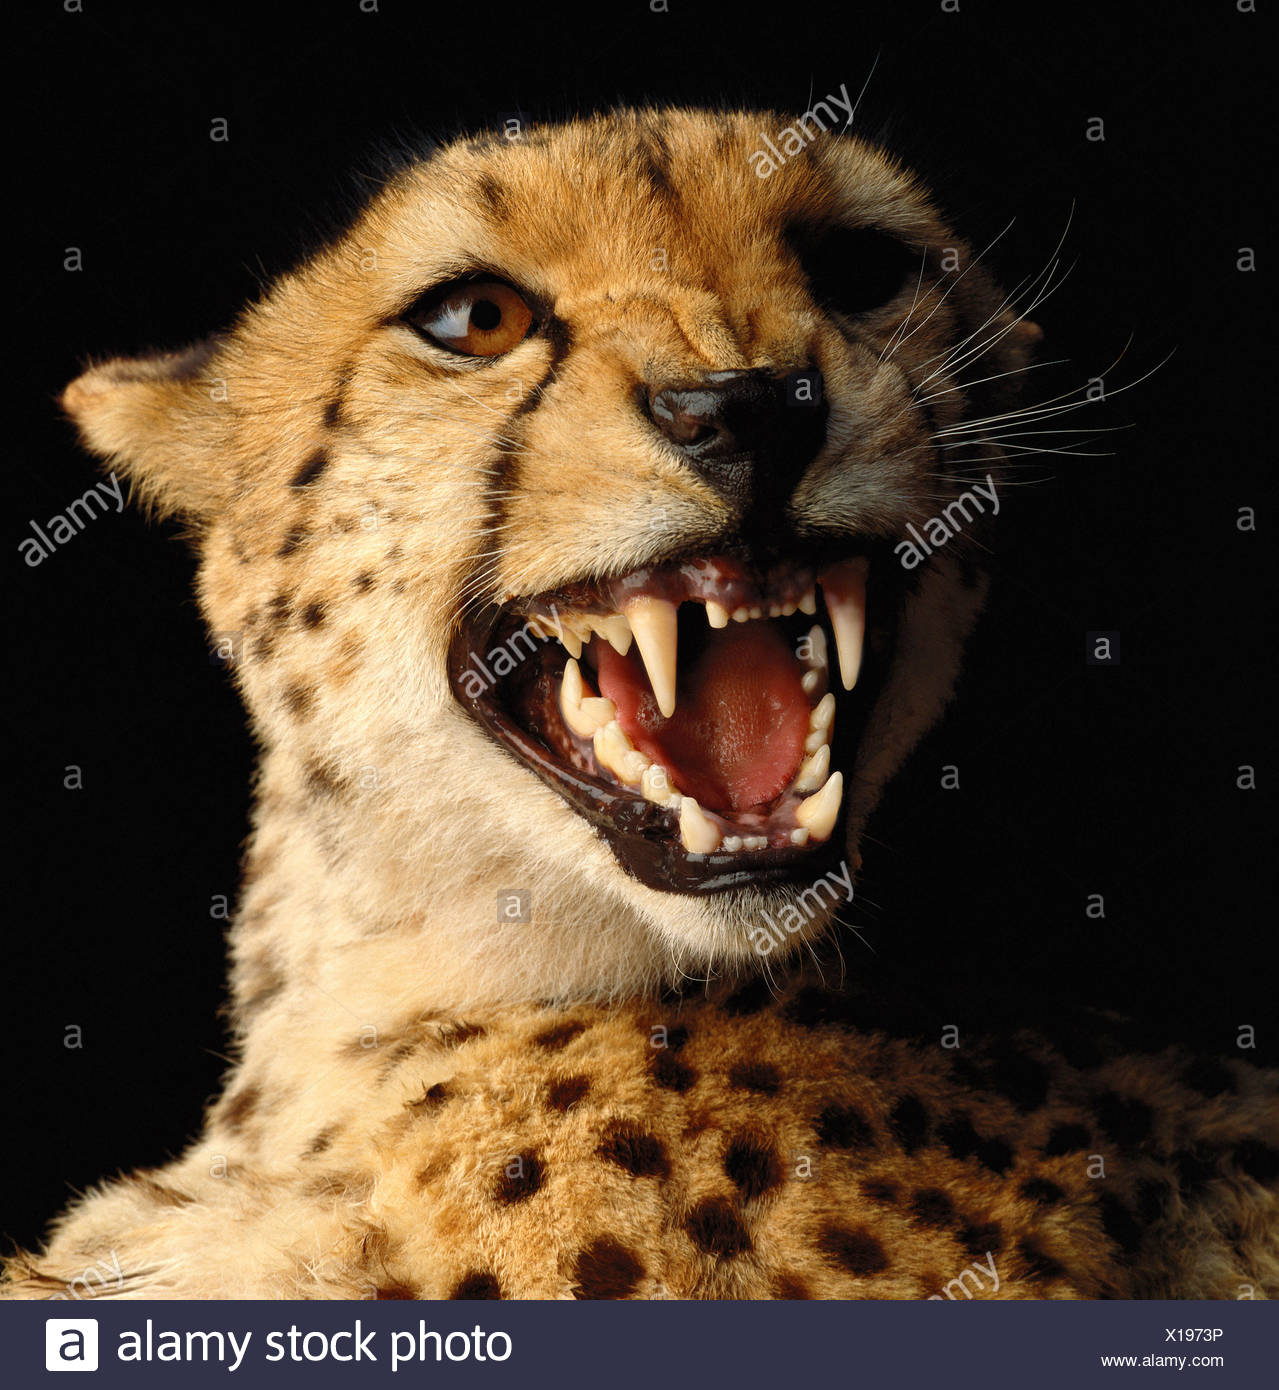 Portrait of Cheetah Snarling - Stock Image